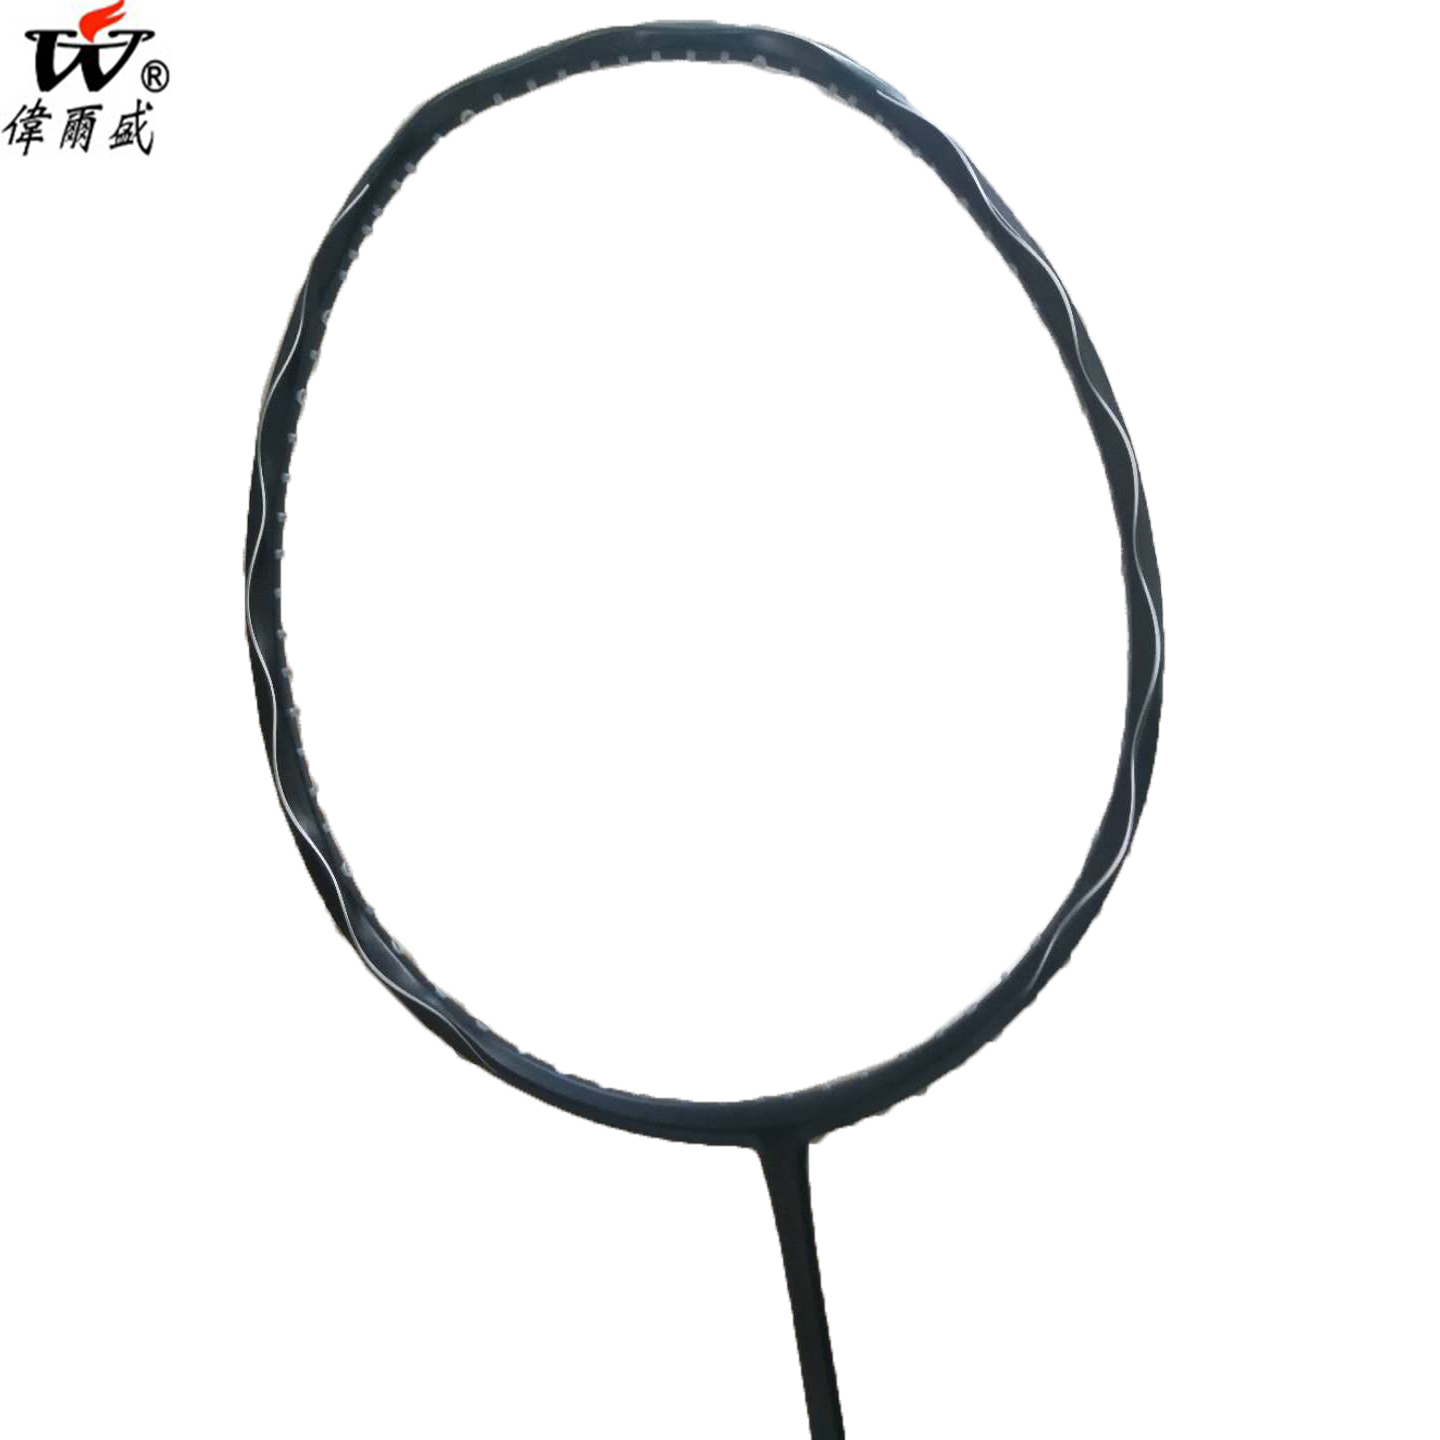 2018 Professional Carbon Spiral Badminton Racket Similar to Japan Inferno